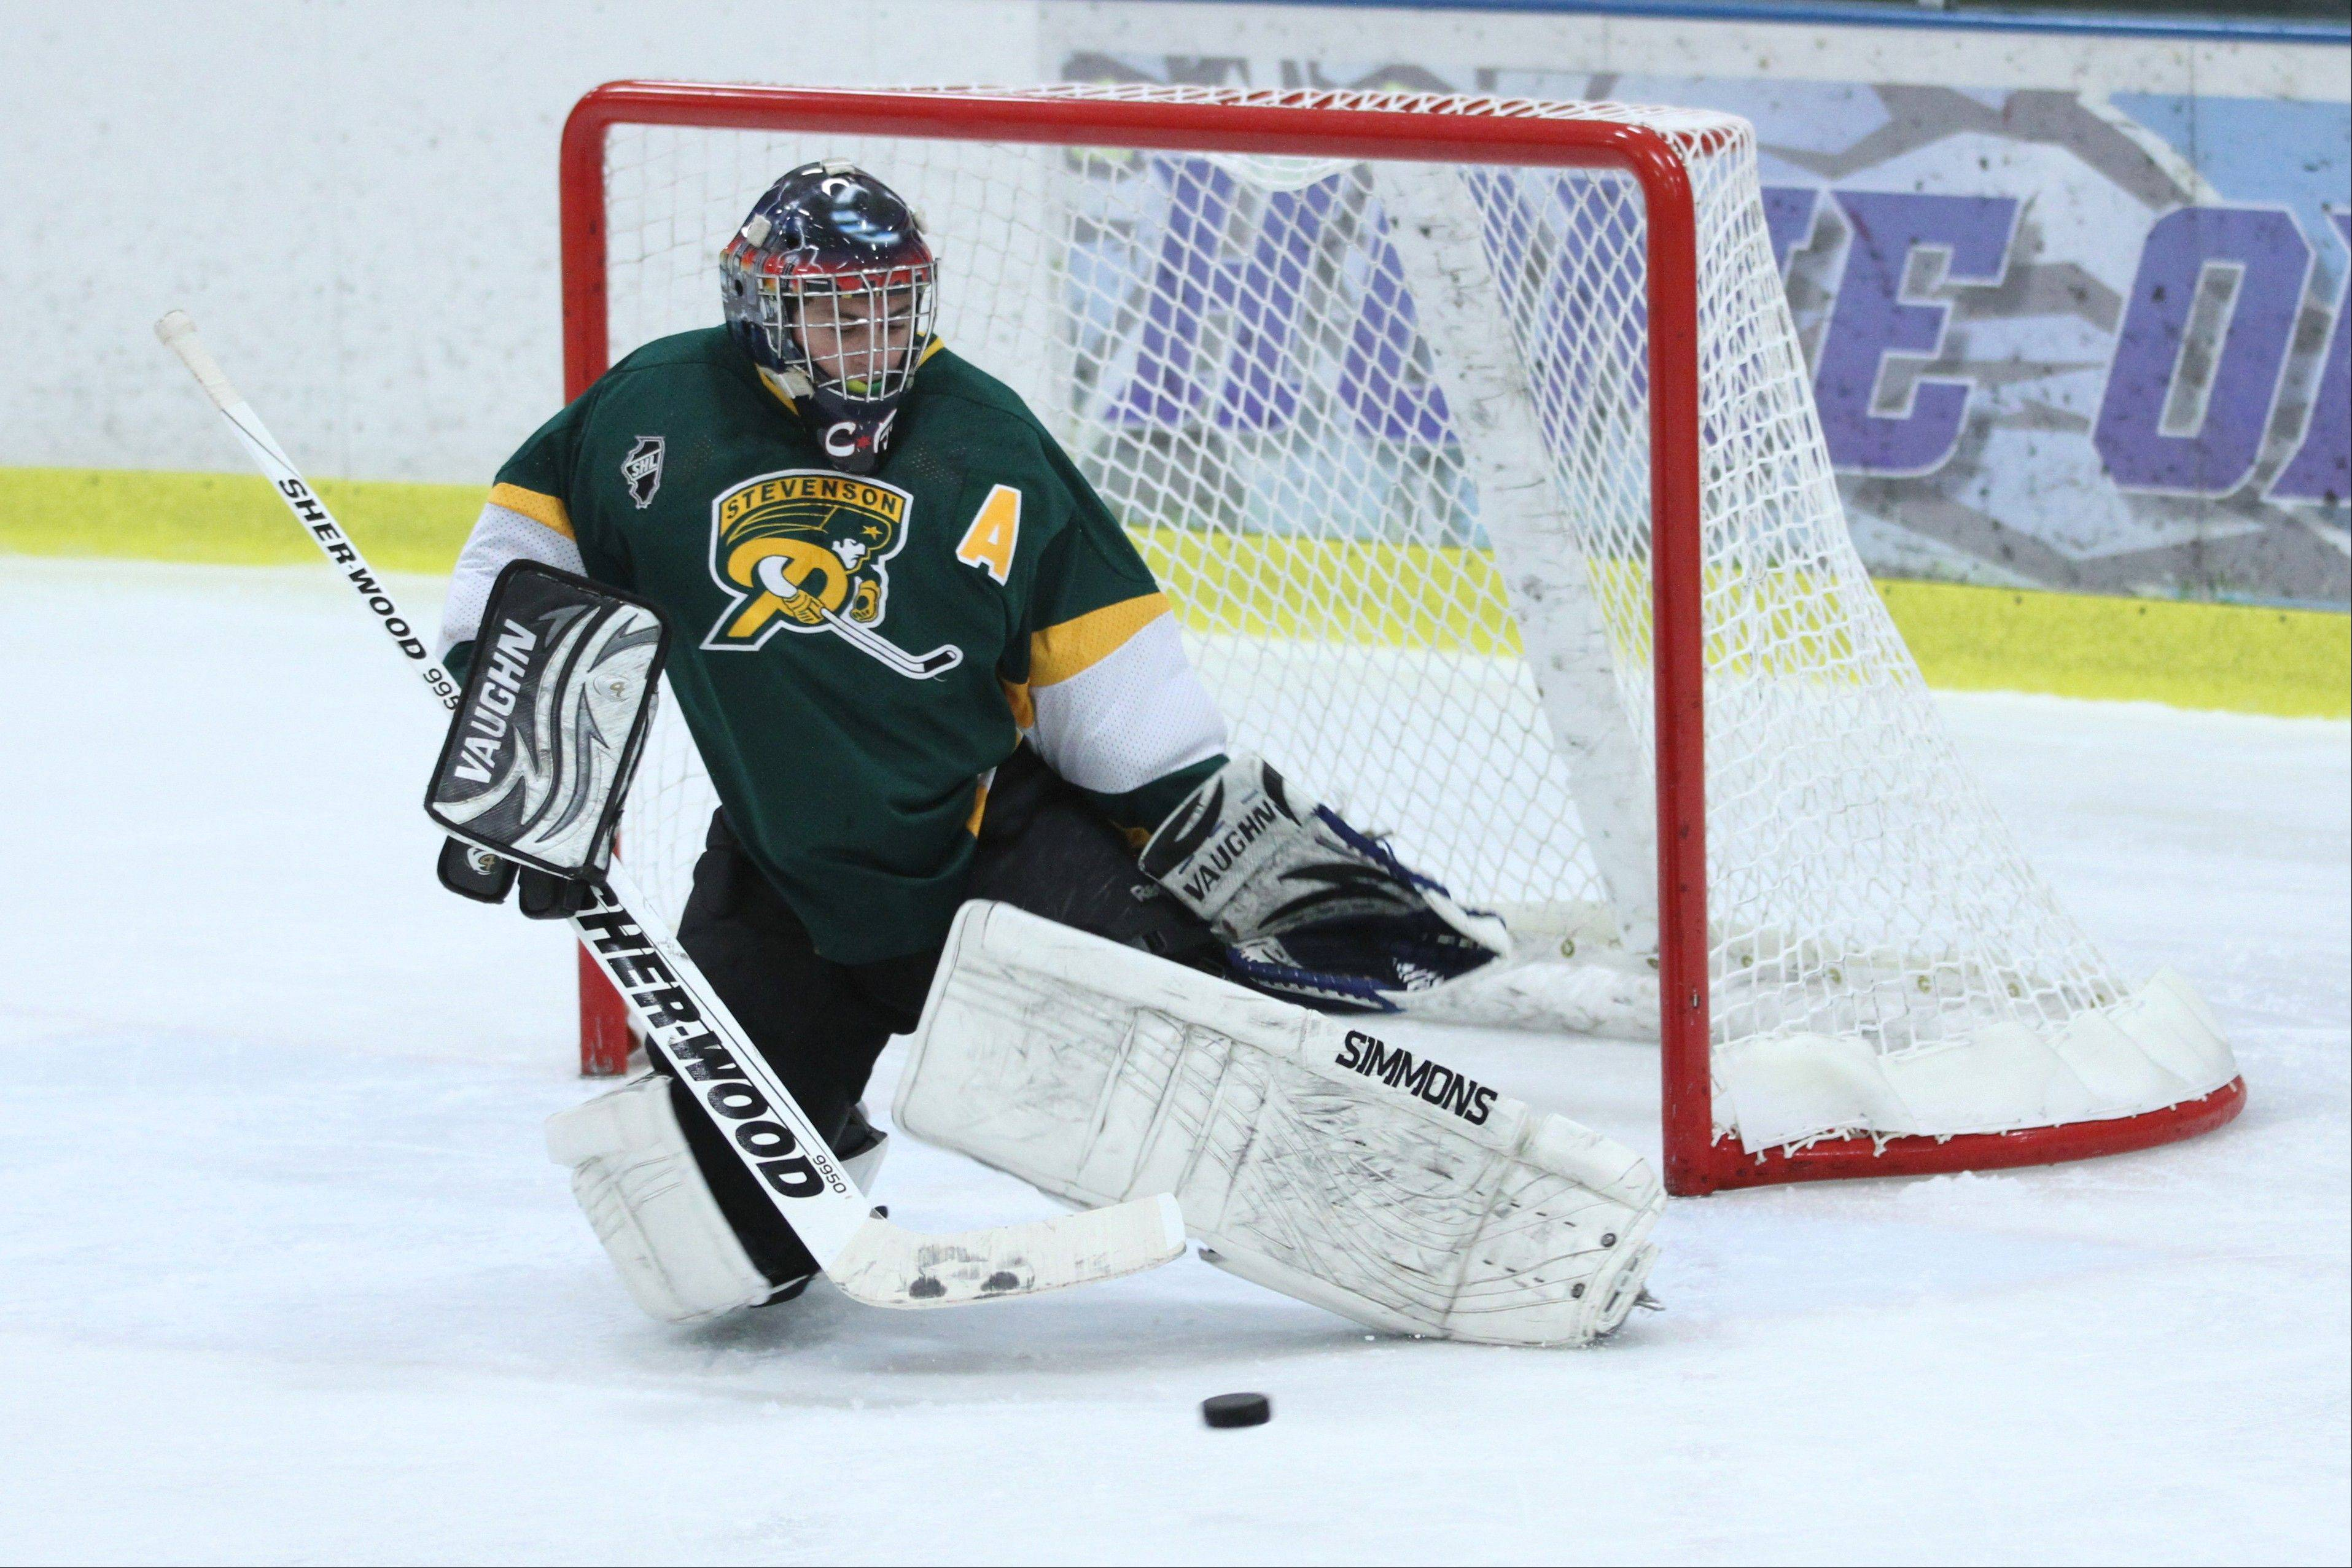 Goalie Corey Benjoya has overcome adversity to help lead Stevenson's hockey team to an 11-3-2 start.